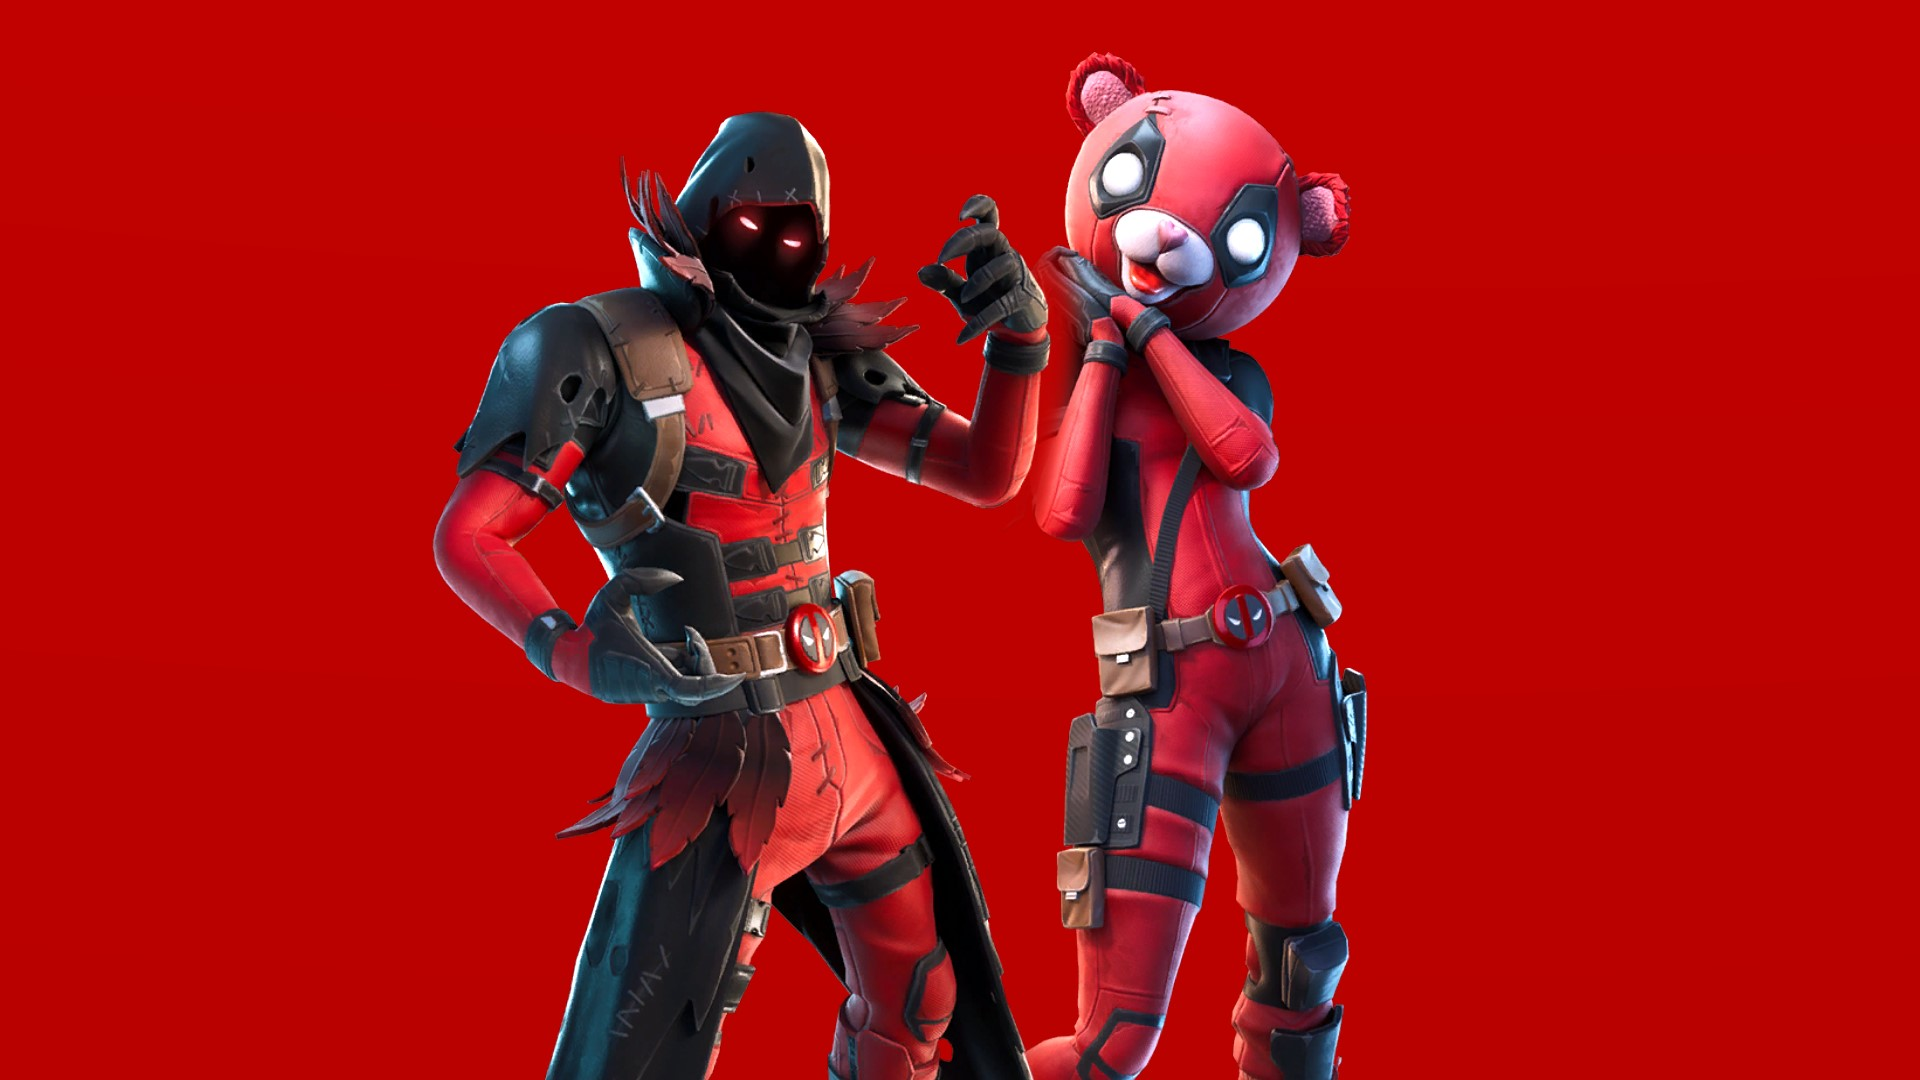 It S All About Deadpool Fortnite S Ravenpool And Cuddlepool Details Hd Wallpapers Supertab Themes